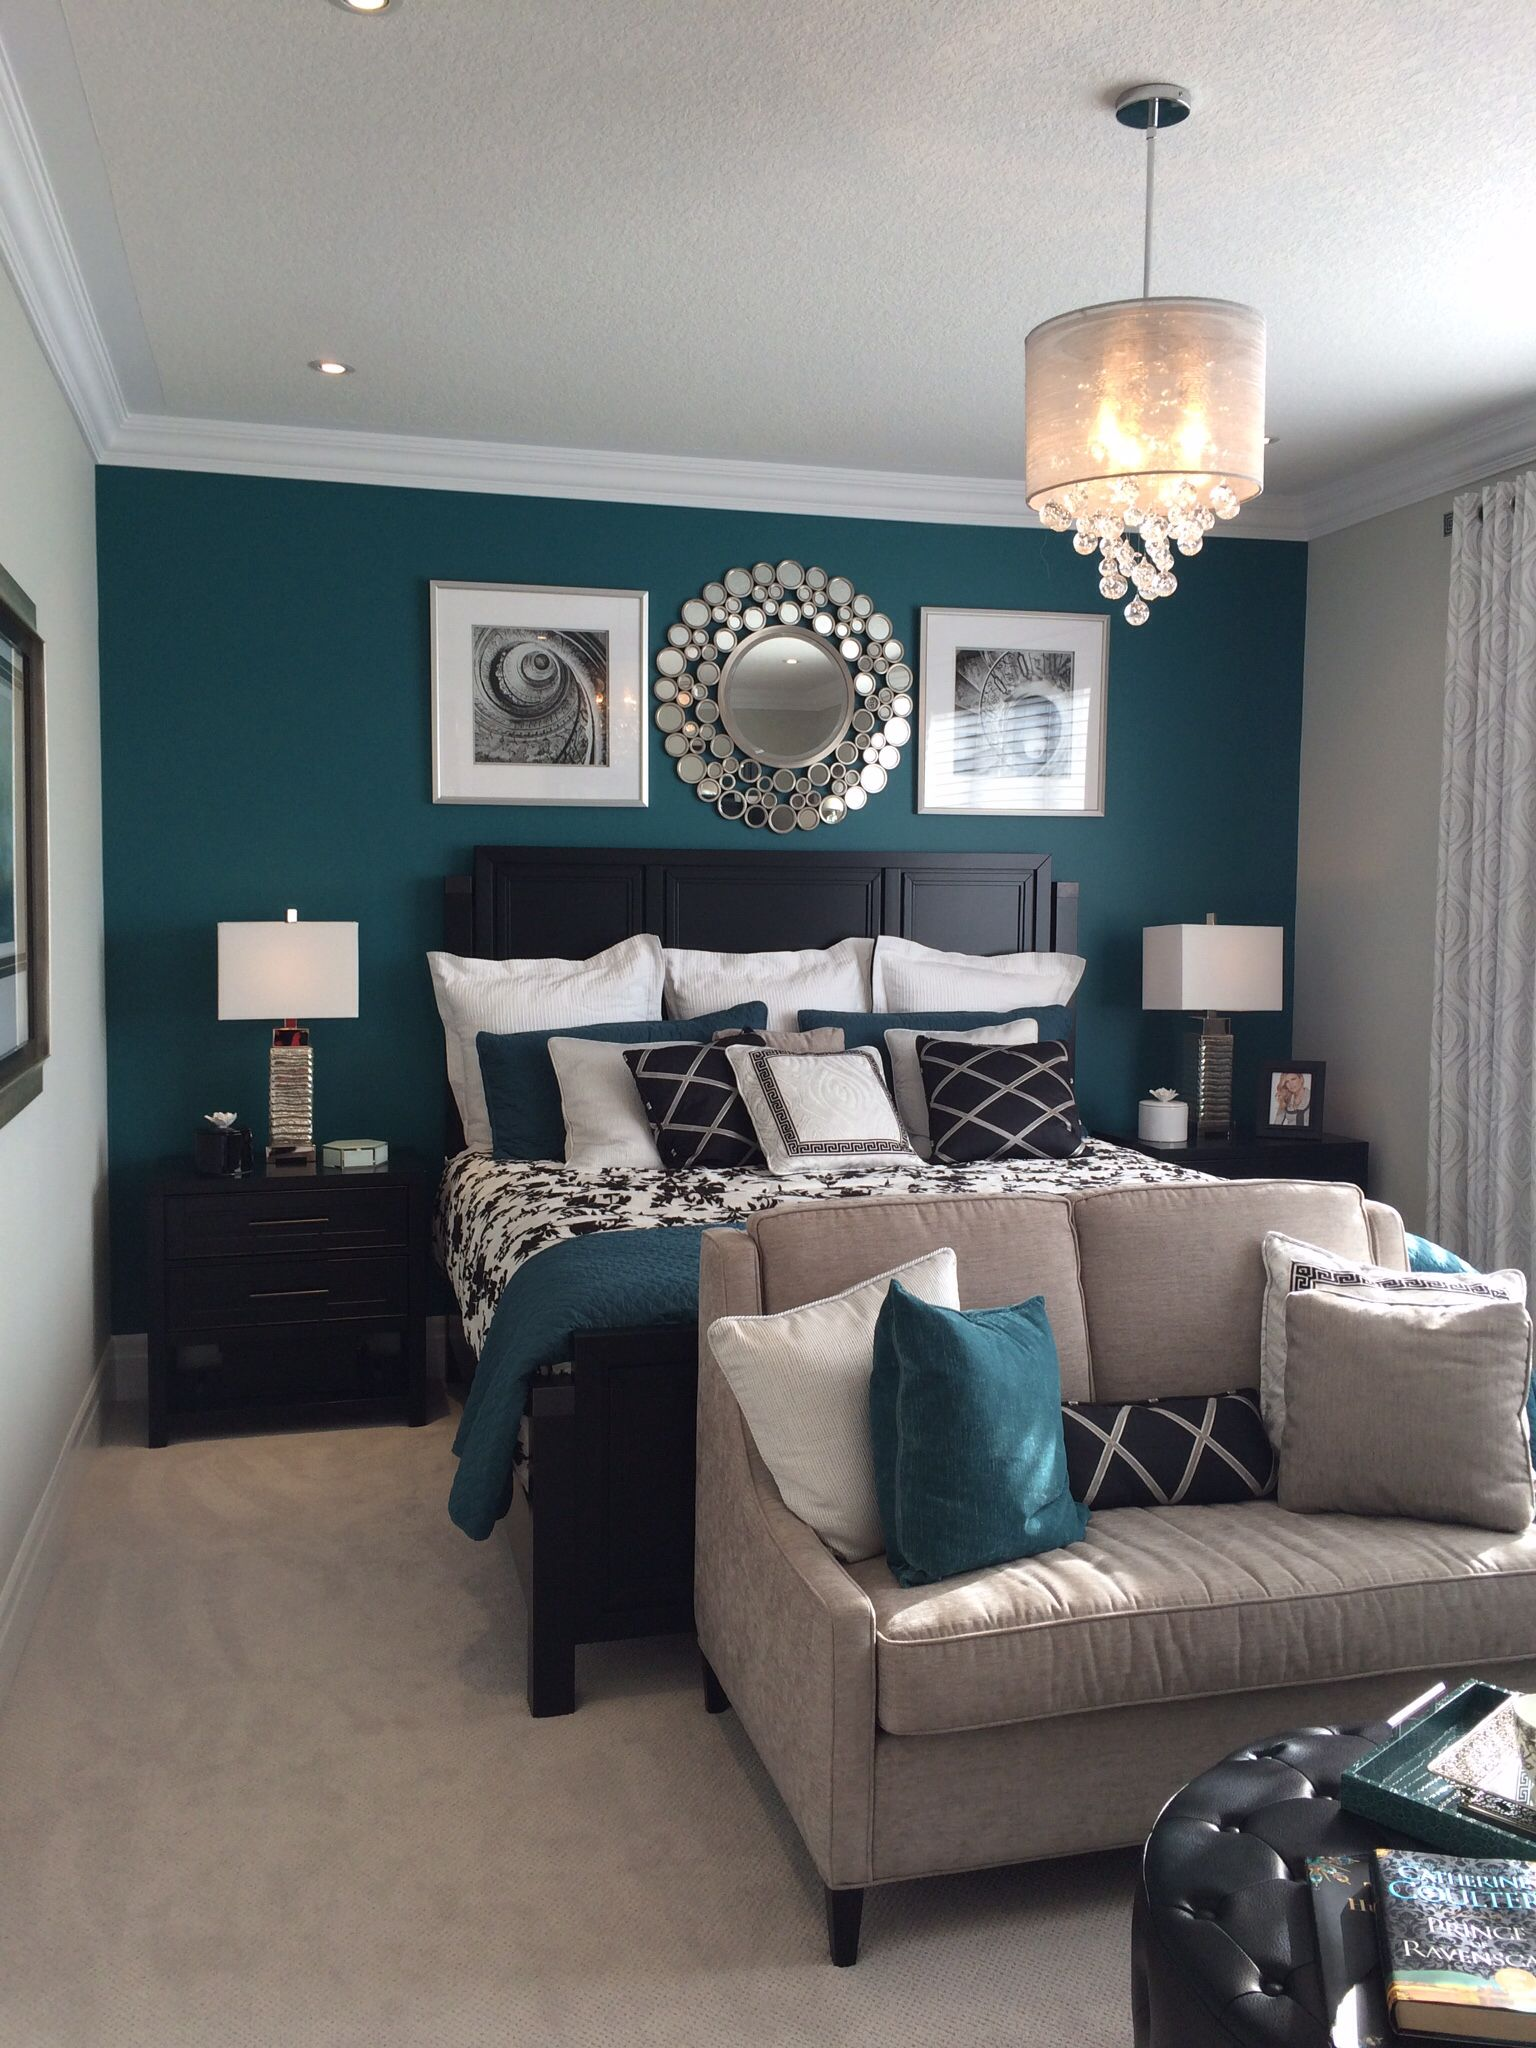 I Love These Colors Master Bedrooms Decor Small Master Bedroom Master Bedroom Colors